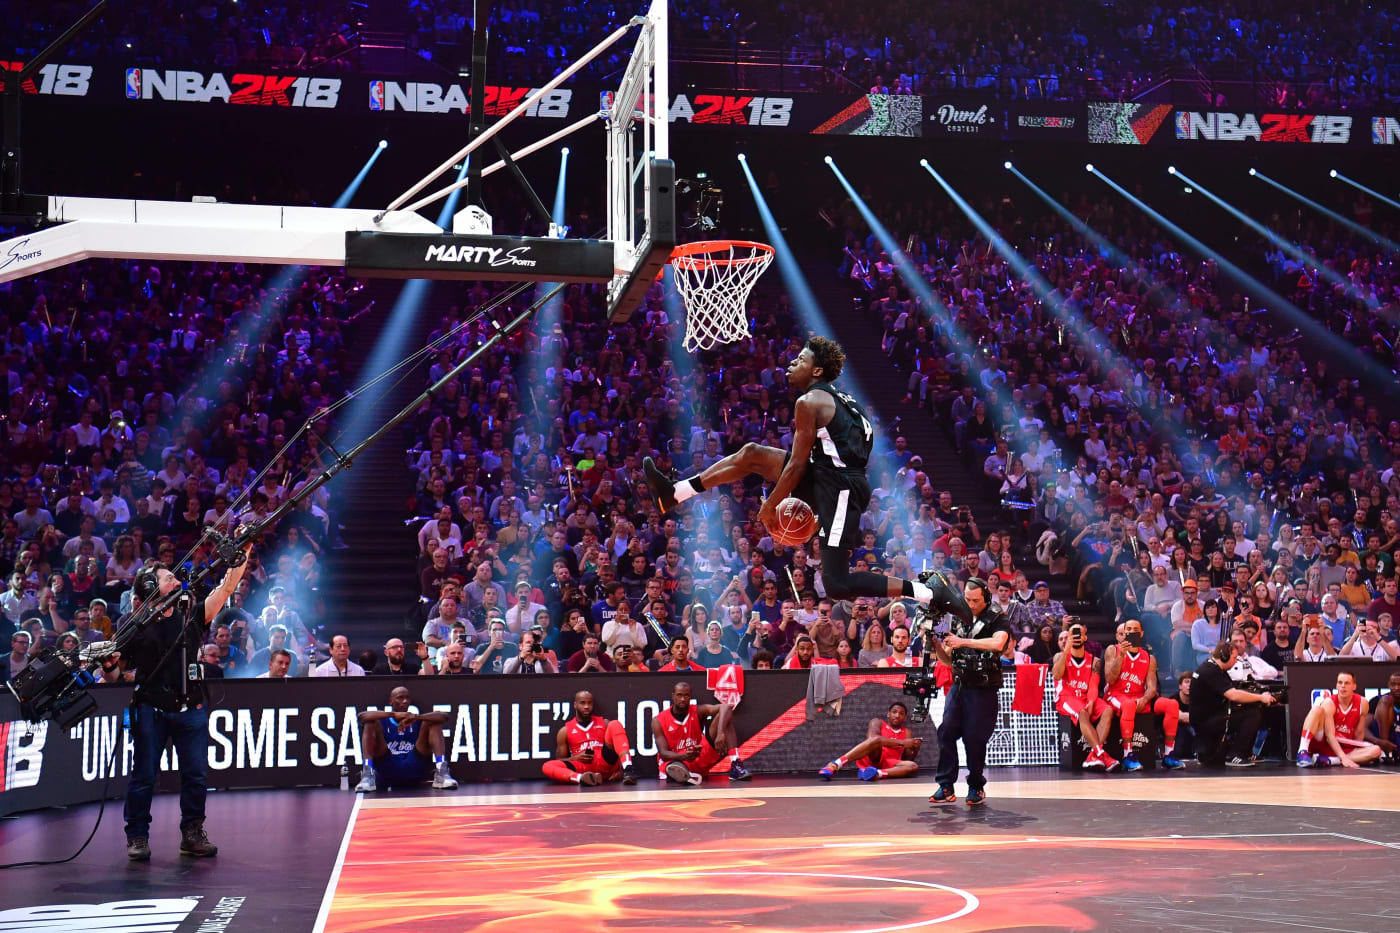 Sylvain Francisco competing in the NBA2K18 Dunk Contest during the All Star Game.